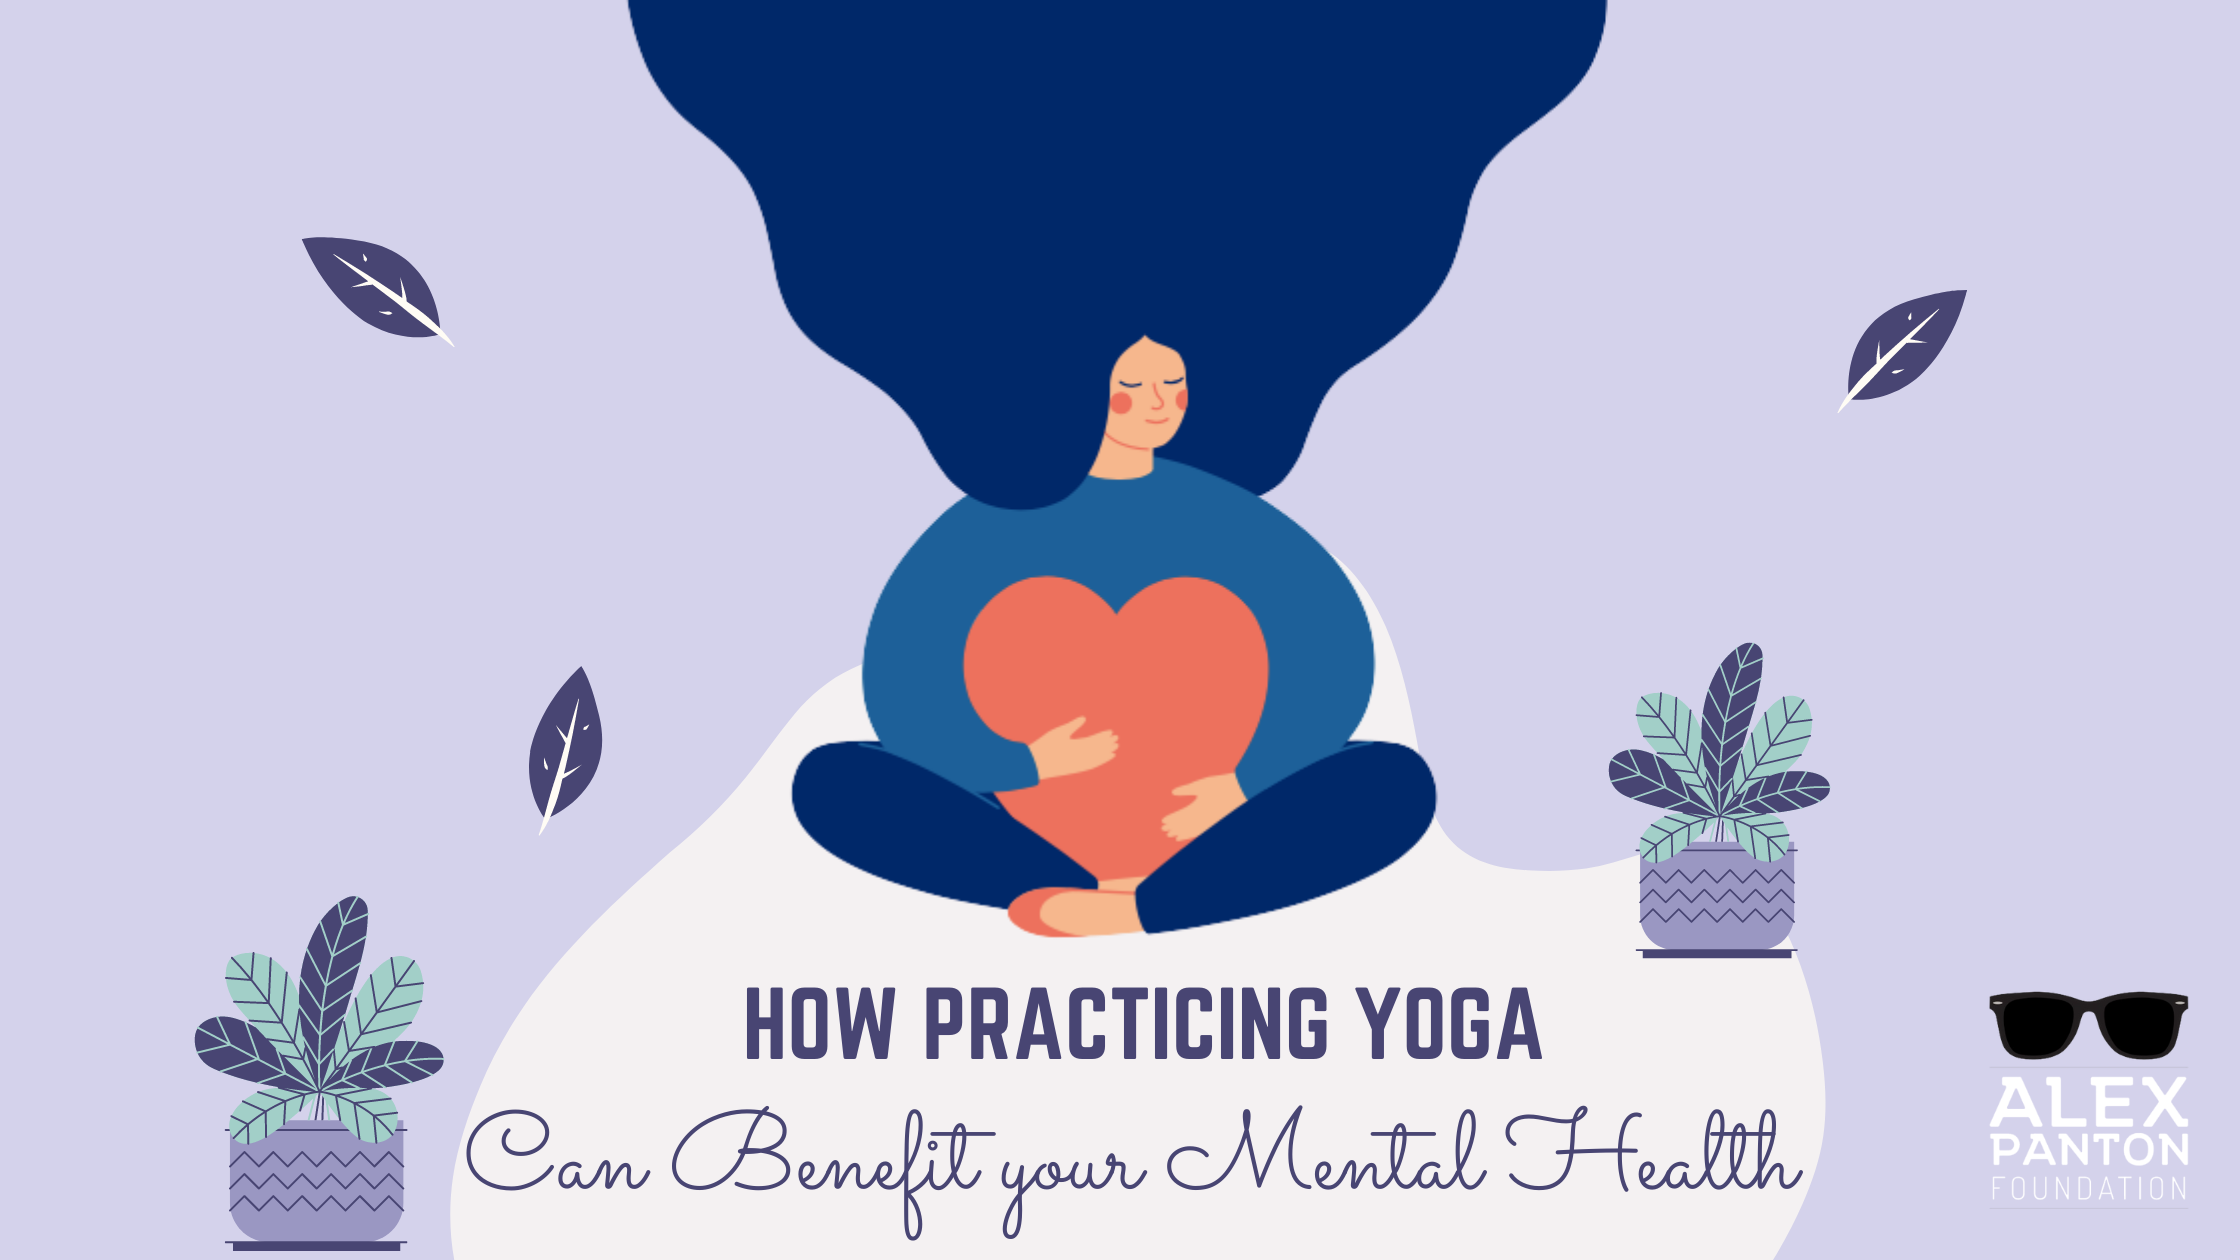 How Practicing Yoga Can Benefit your Mental Health